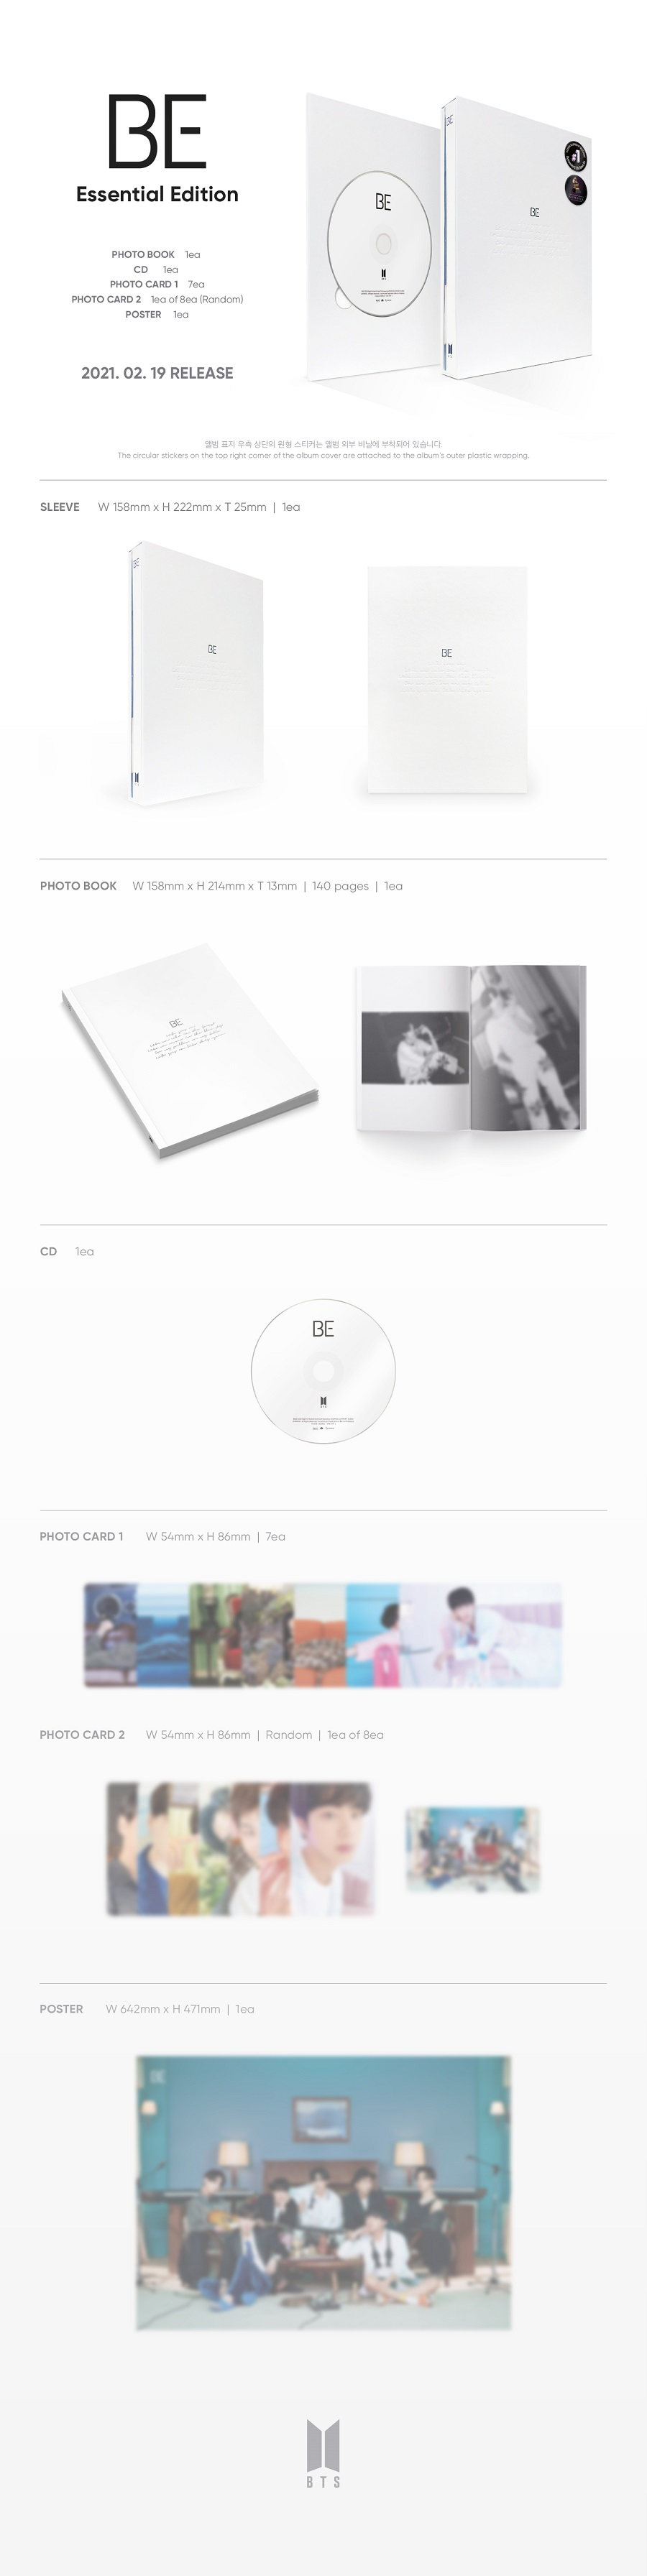 방탄소년단(BTS) - BE [Essential Edition]